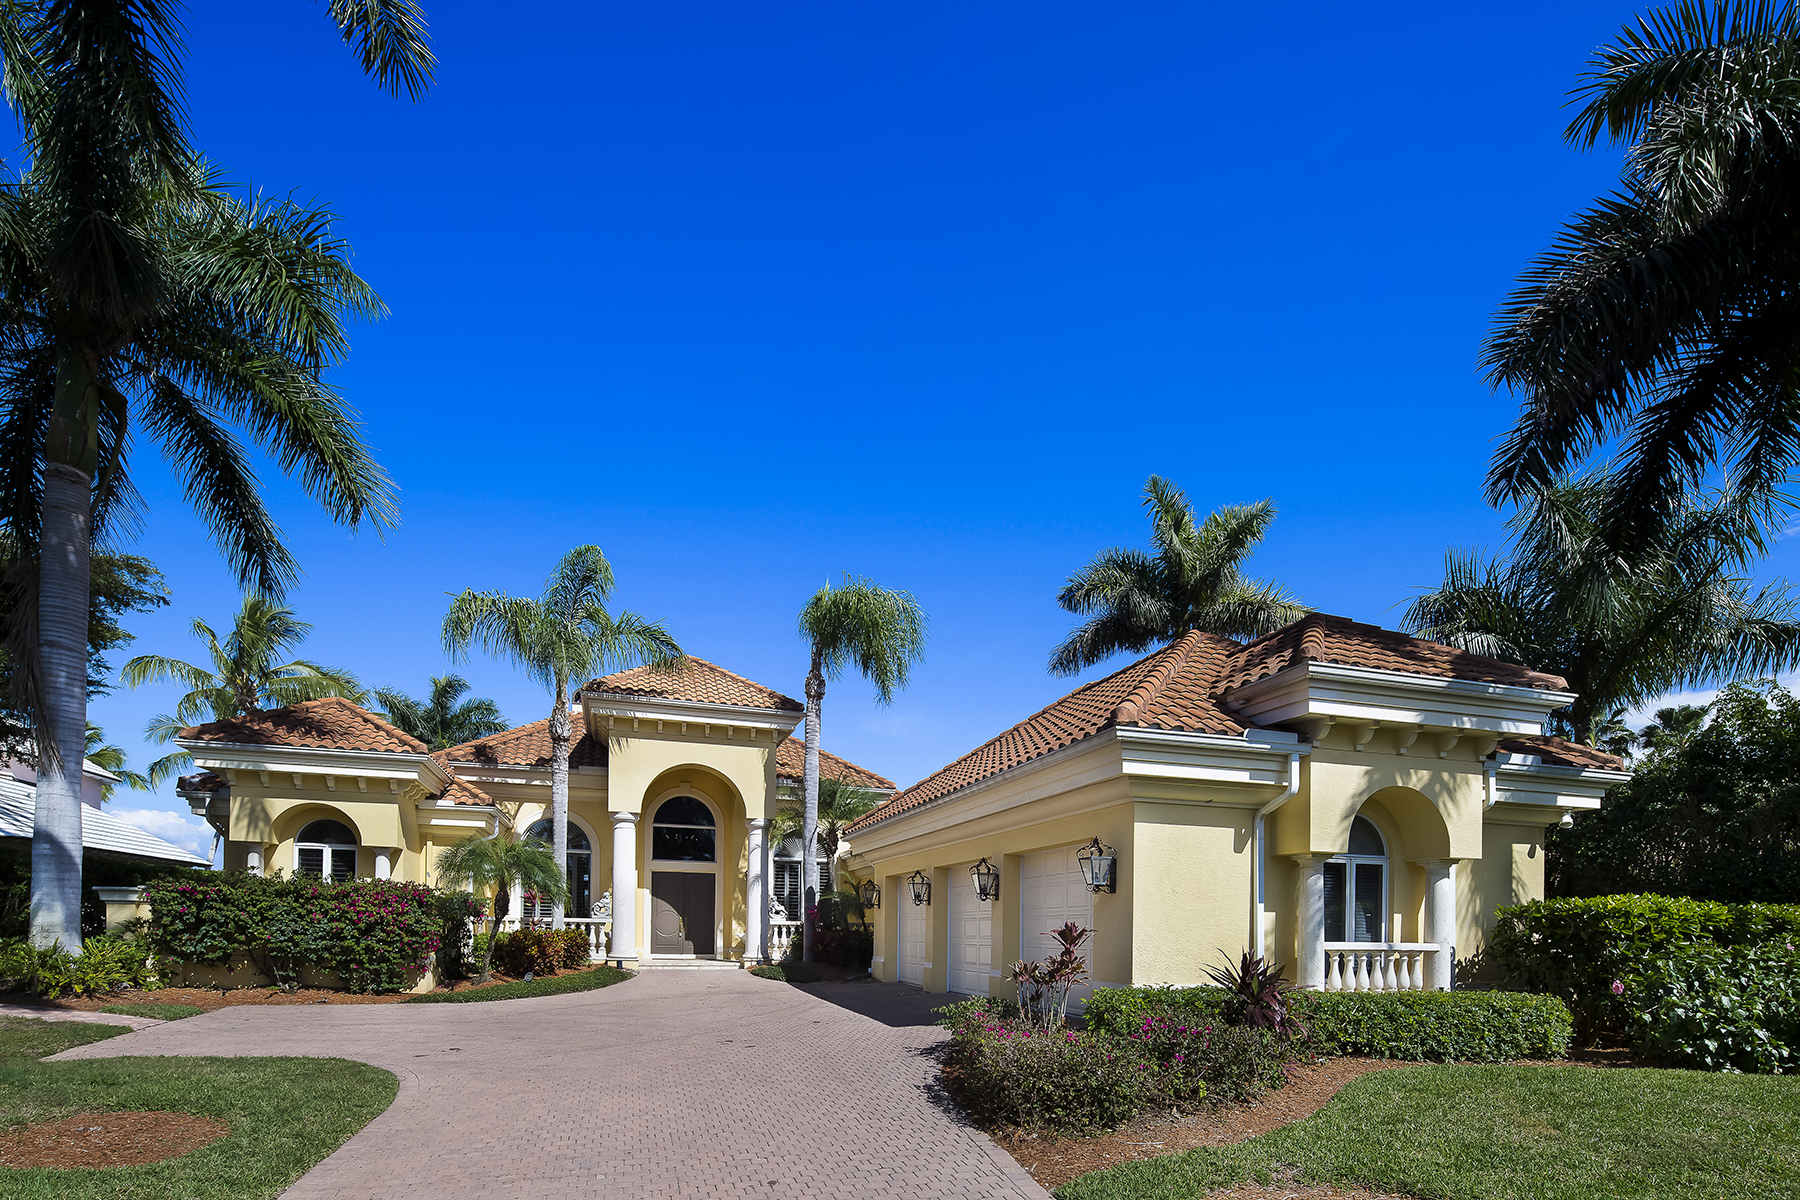 Casa Unifamiliar por un Venta en Naples 4223 Cutlass Ln Port Royal, Naples, Florida, 34102 Estados Unidos